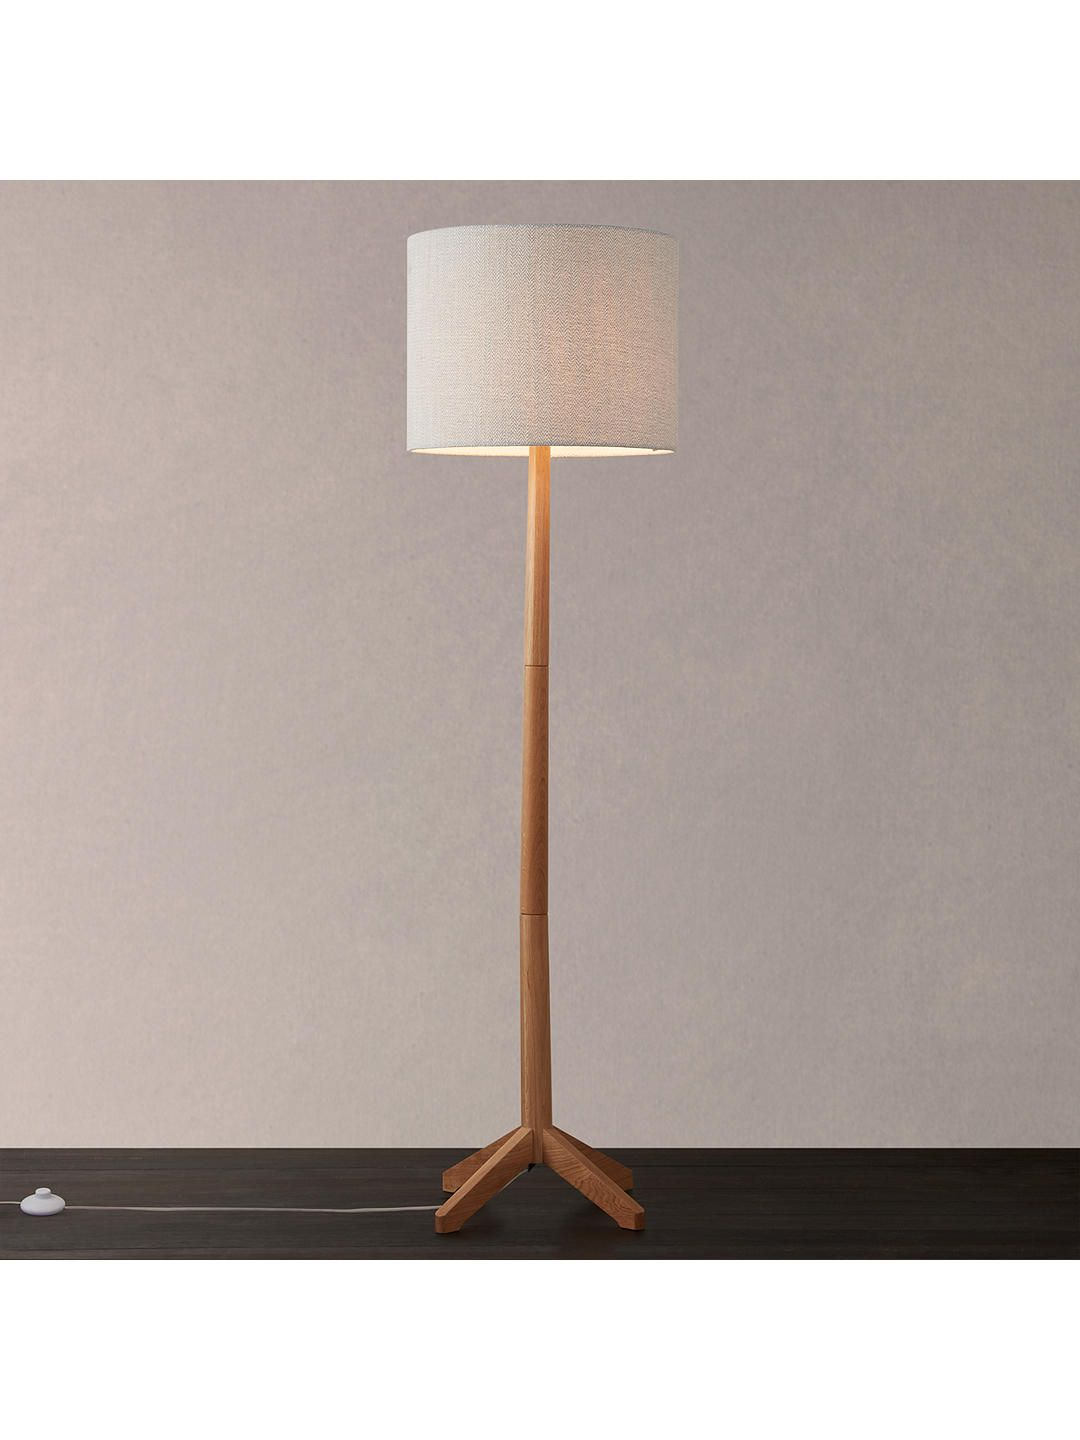 Croft Collection Lachlan Floor Lamp Fsc Certified Oak Oak Floor Lamp Floor Lamp Lamp